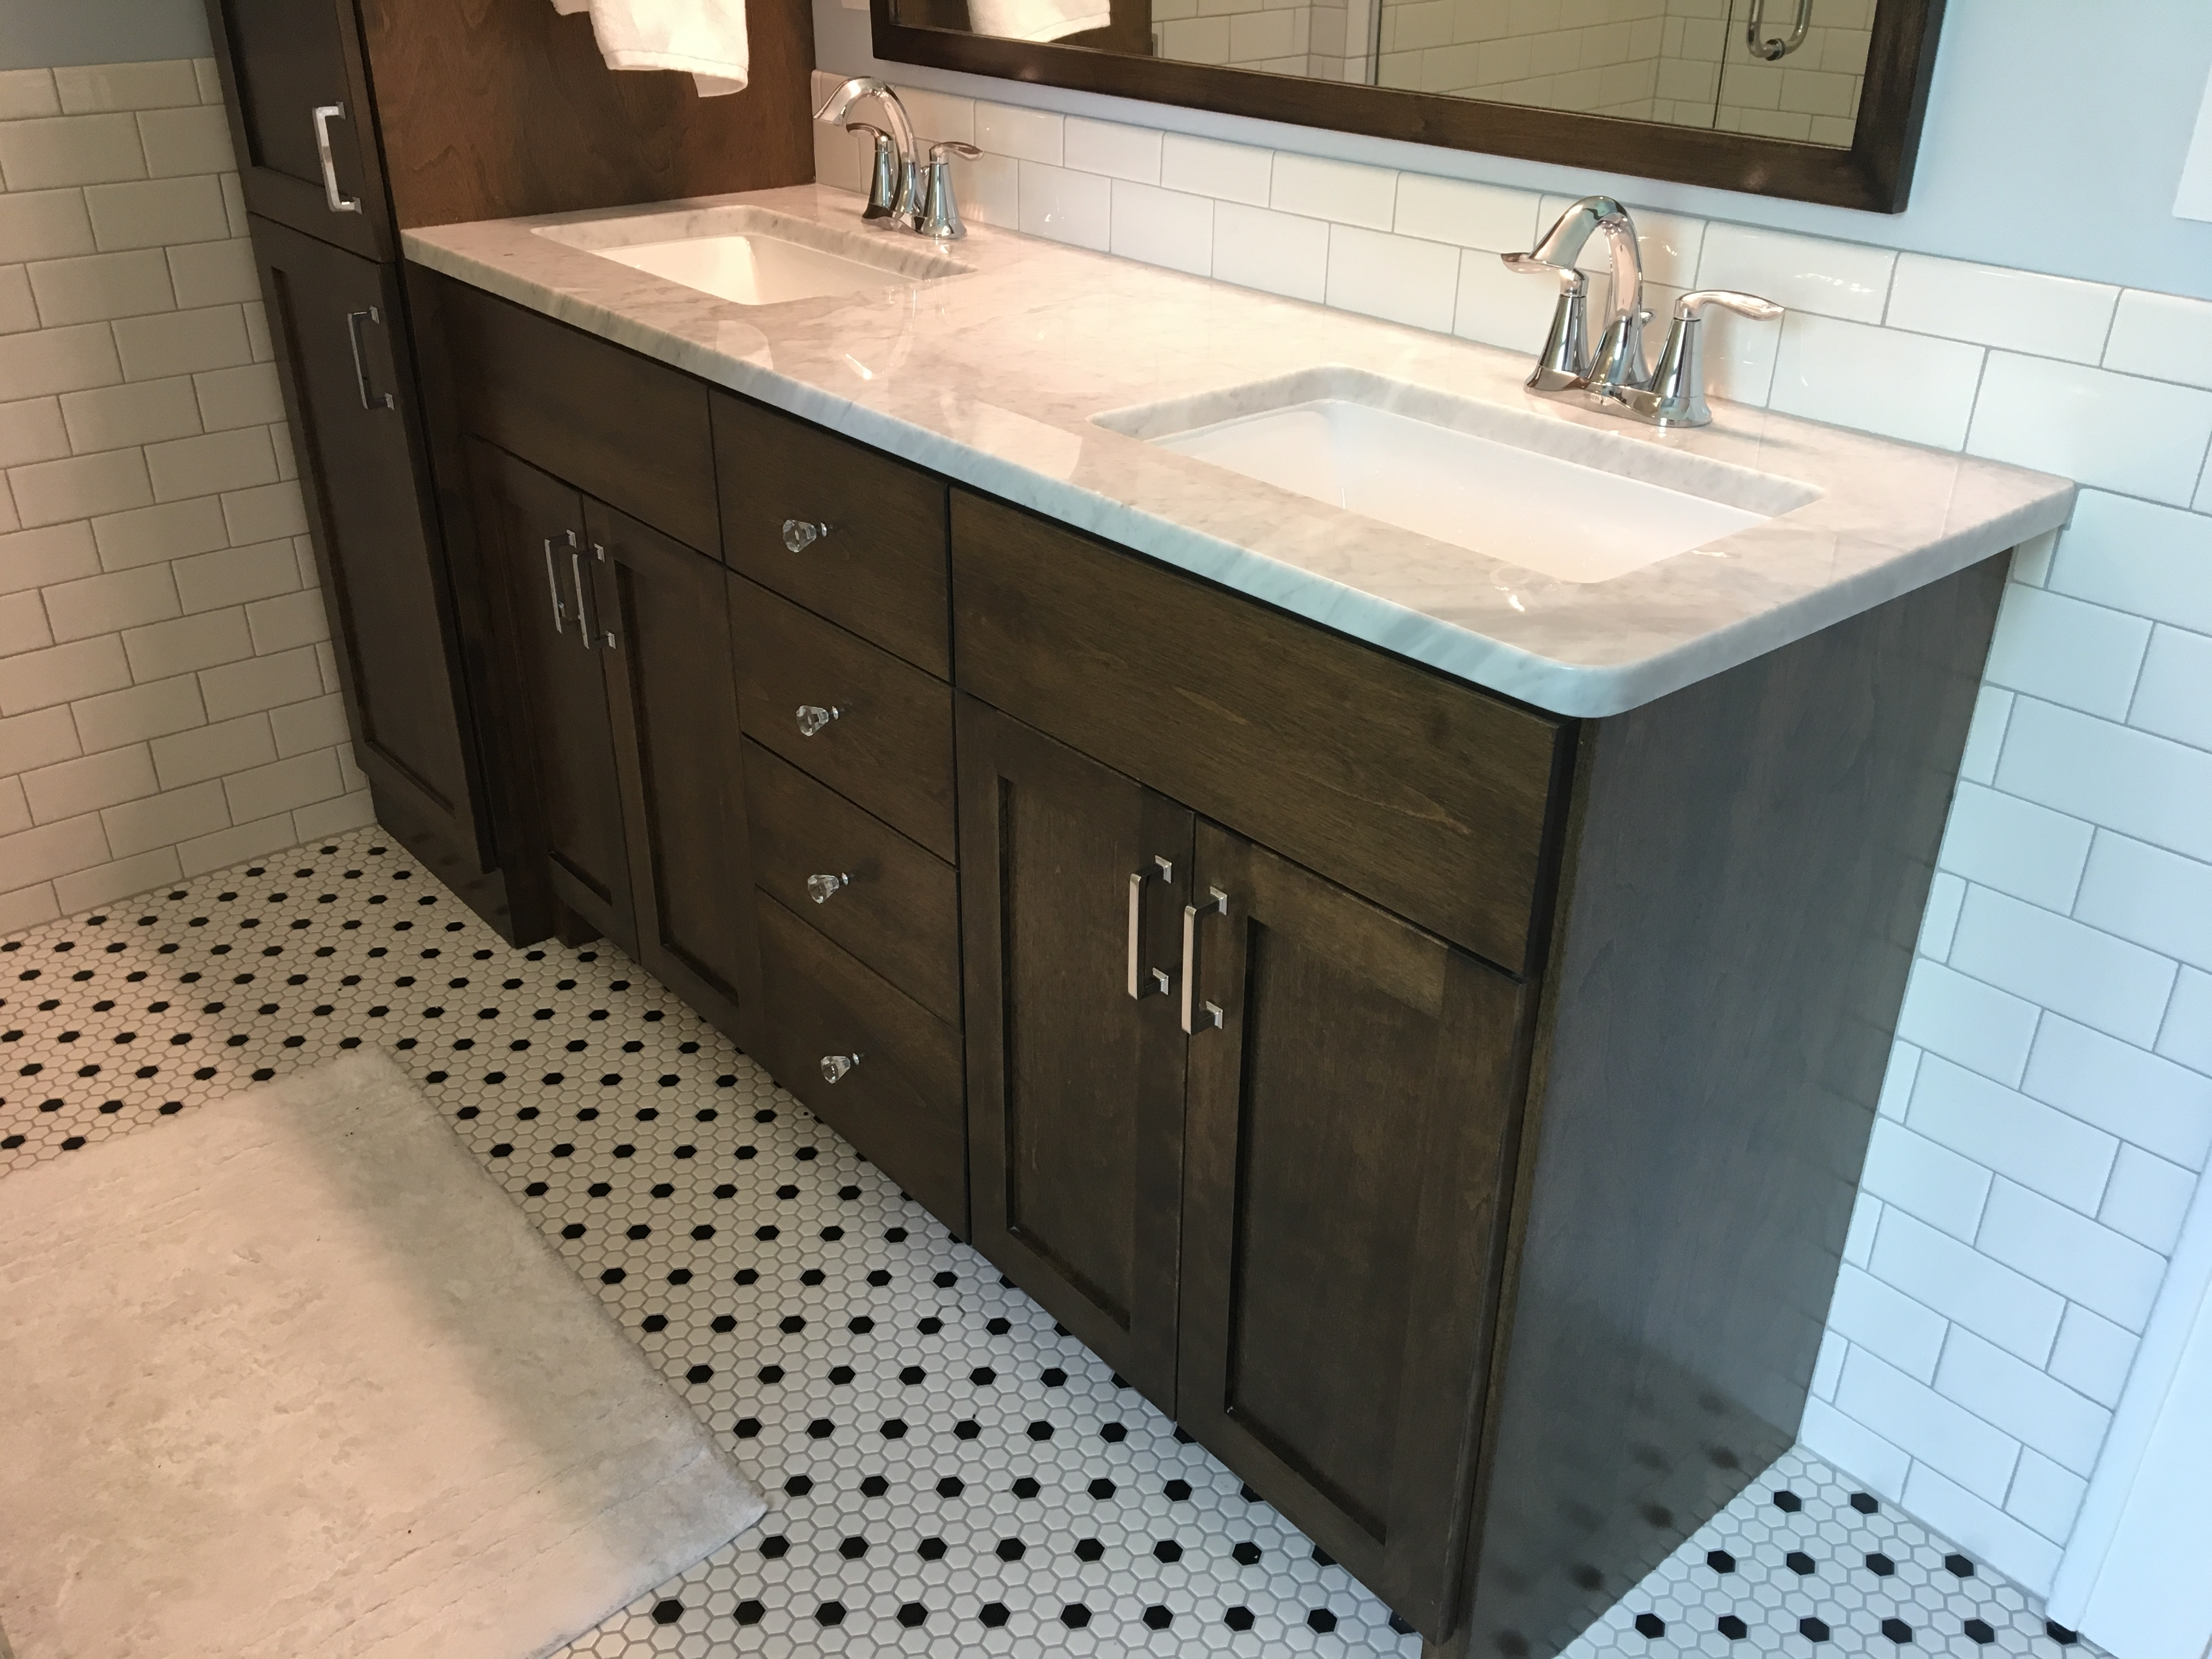 Cabinet design for counter top-img_3568.jpg